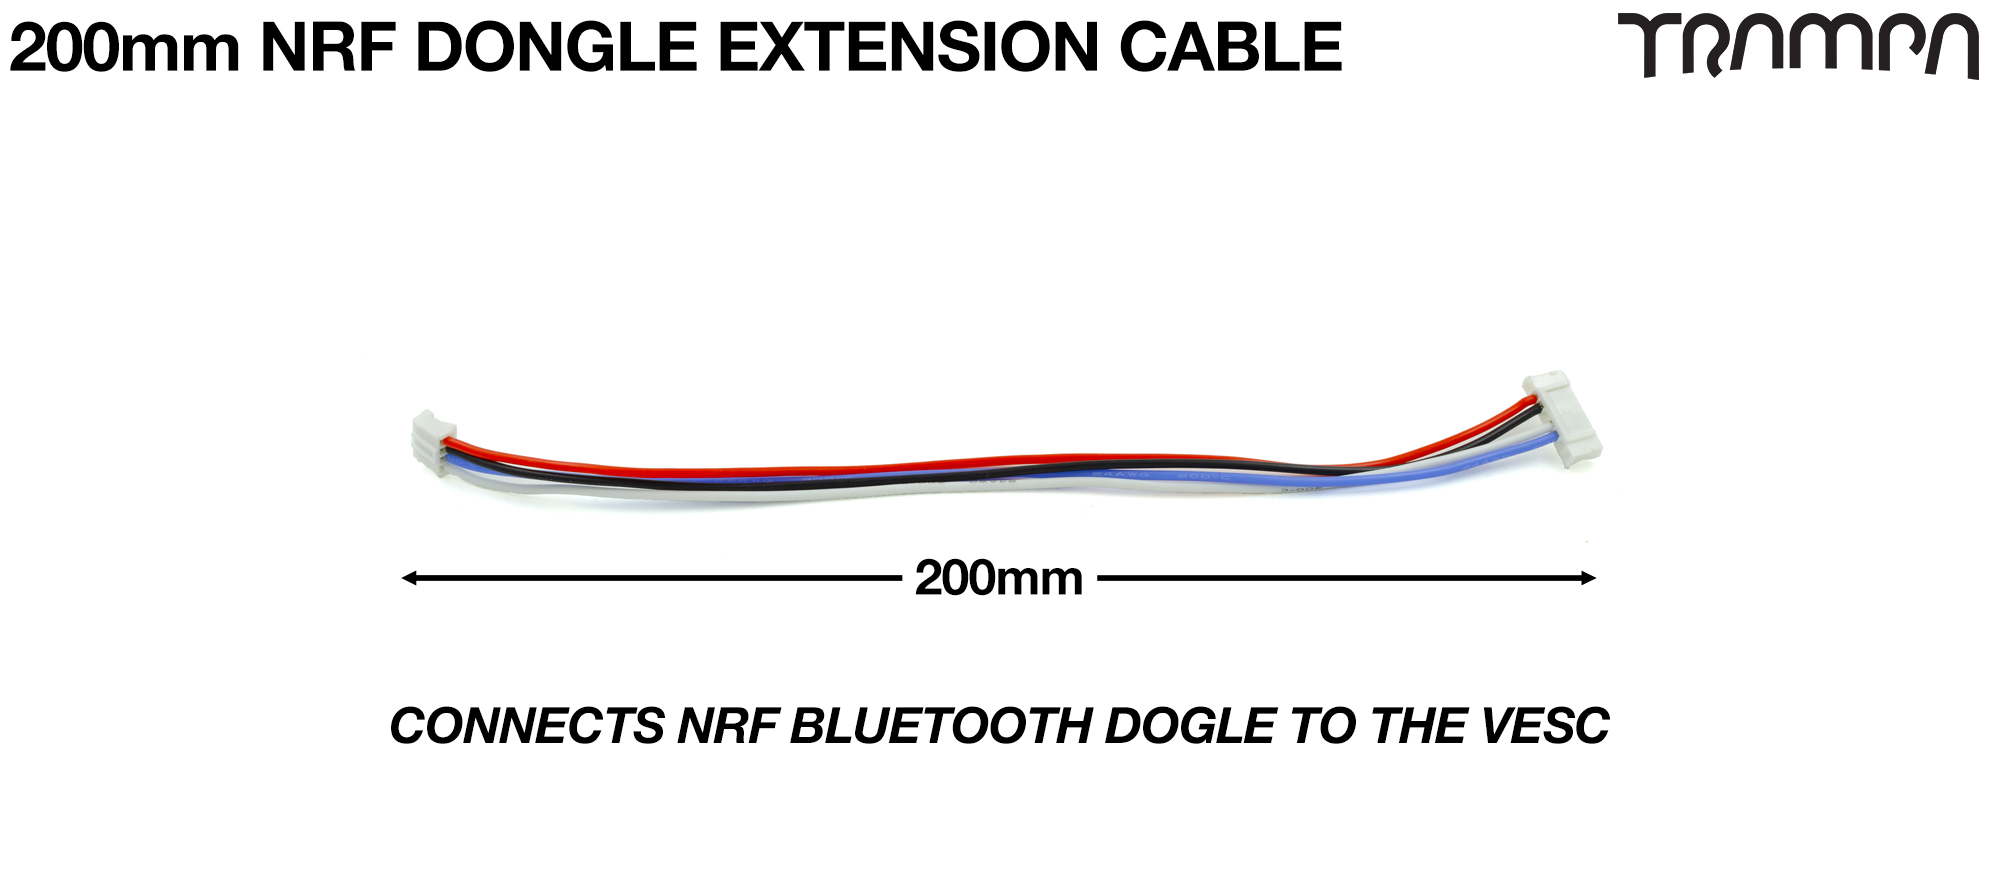 NRF Dongle Extender cable 200mm